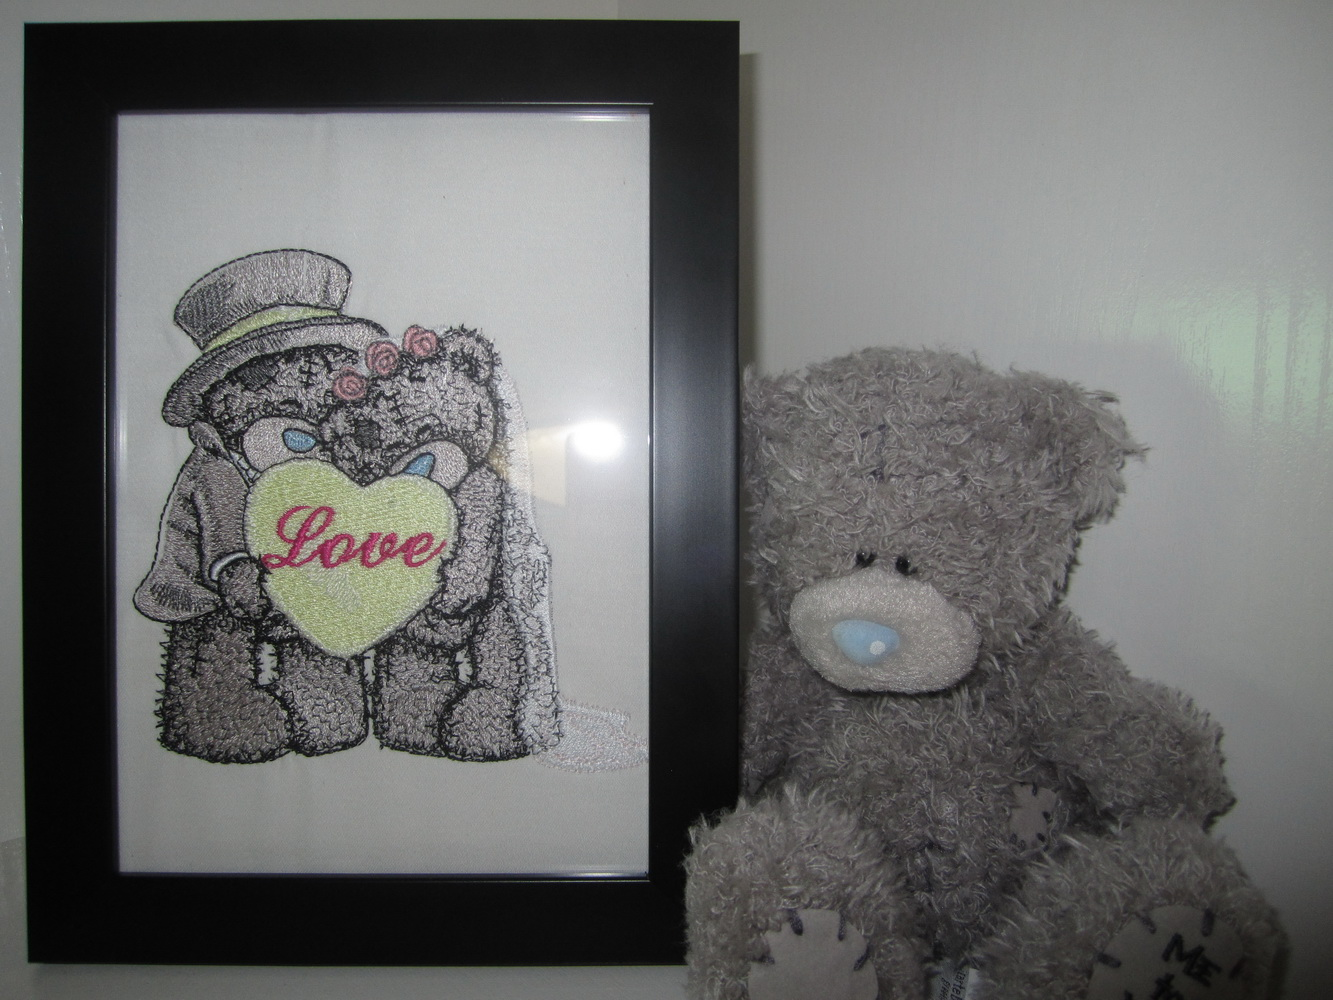 Blue nose bride and groom in frame embroidered